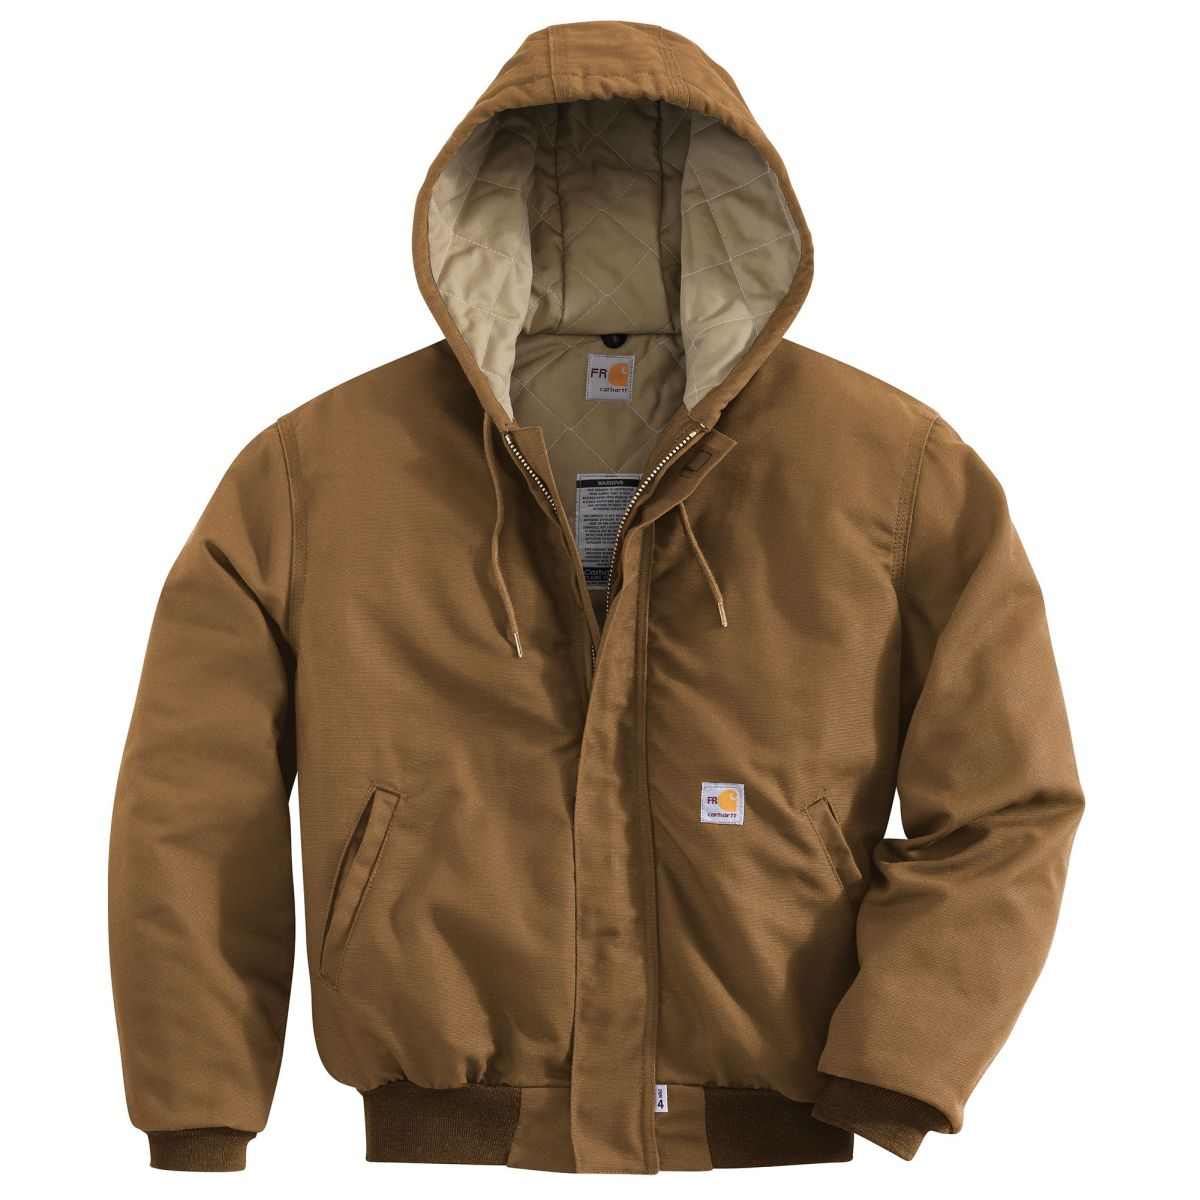 101622 Mens Flame-Resistant Canvas Active Jac-Carhartt